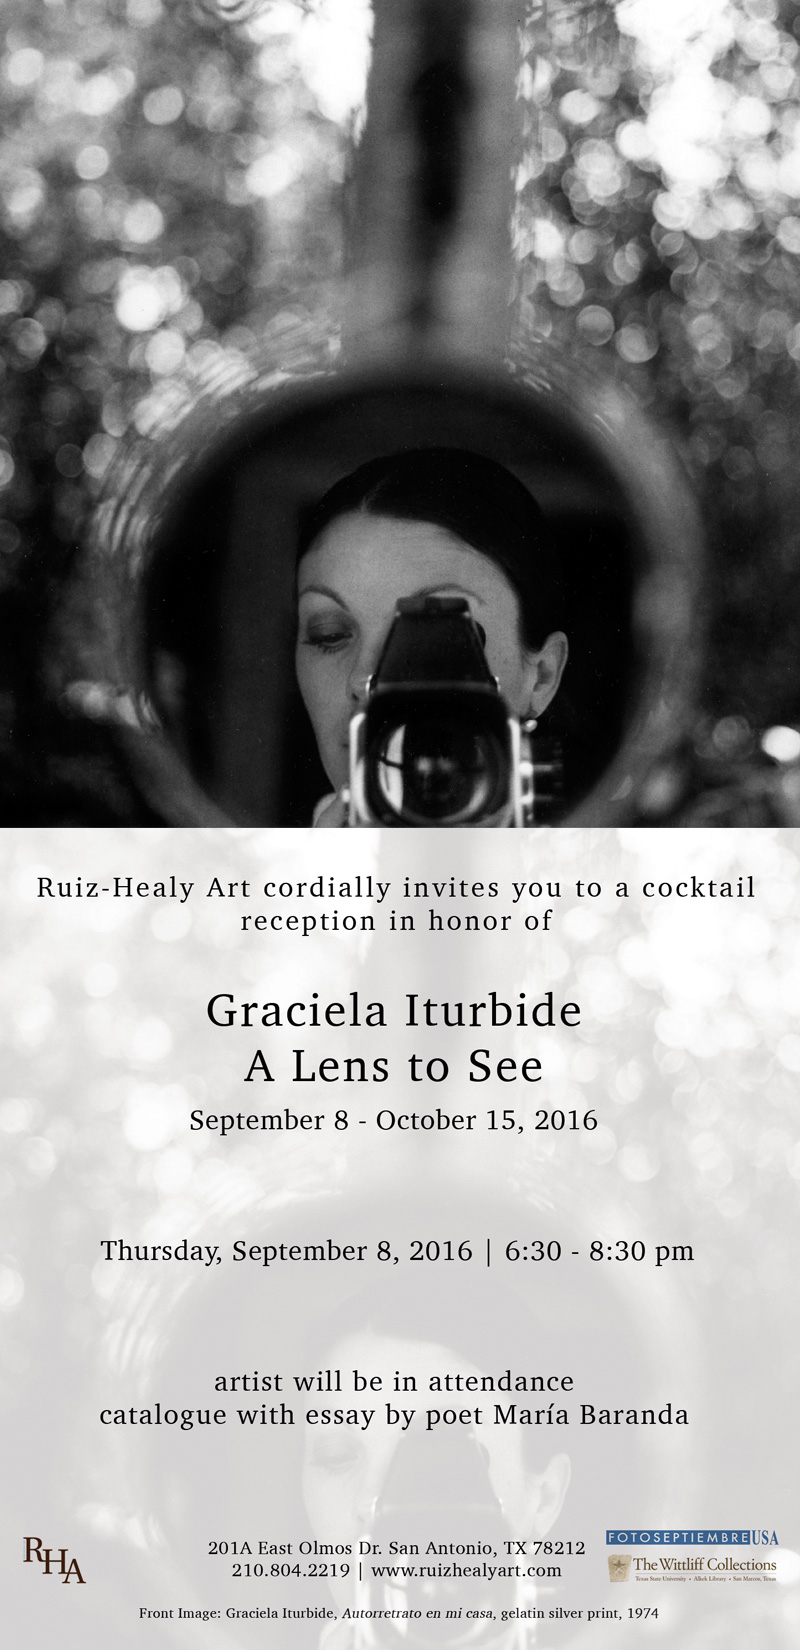 2016-FOTOSEPTIEMBRE-USA_Press-Archives_Graciela-Iturbide_A-Lens-To-See-Exhibition-Promo-Card_Ruiz-Healy-Art